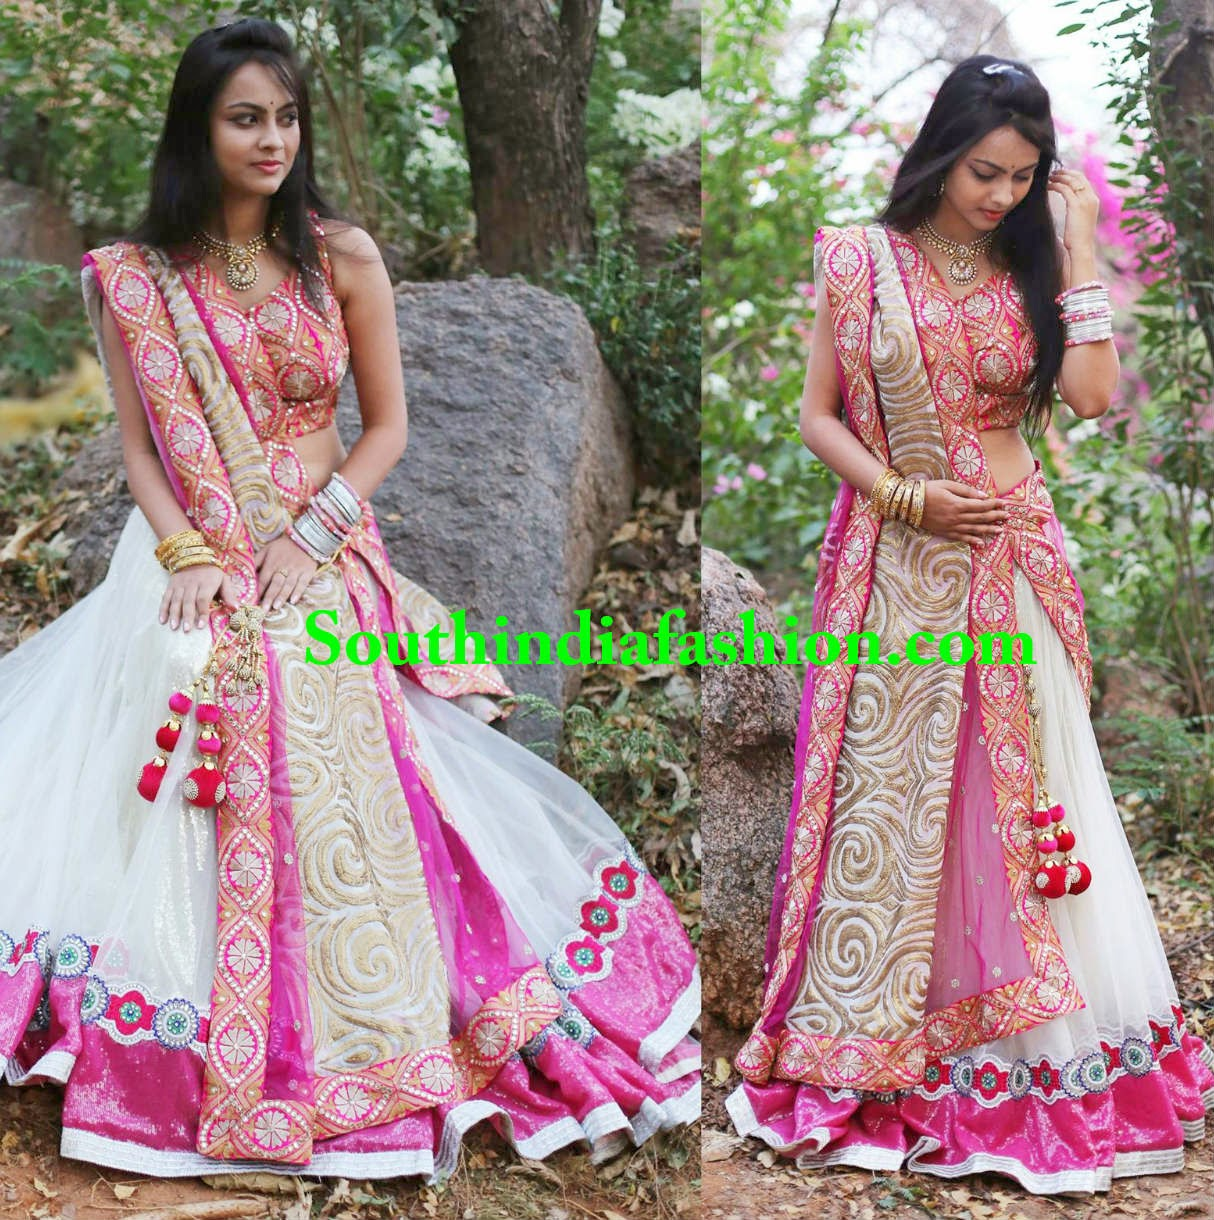 Bridal sarees indian bridal sarees bridal sarees for parties - 301 Moved Permanently